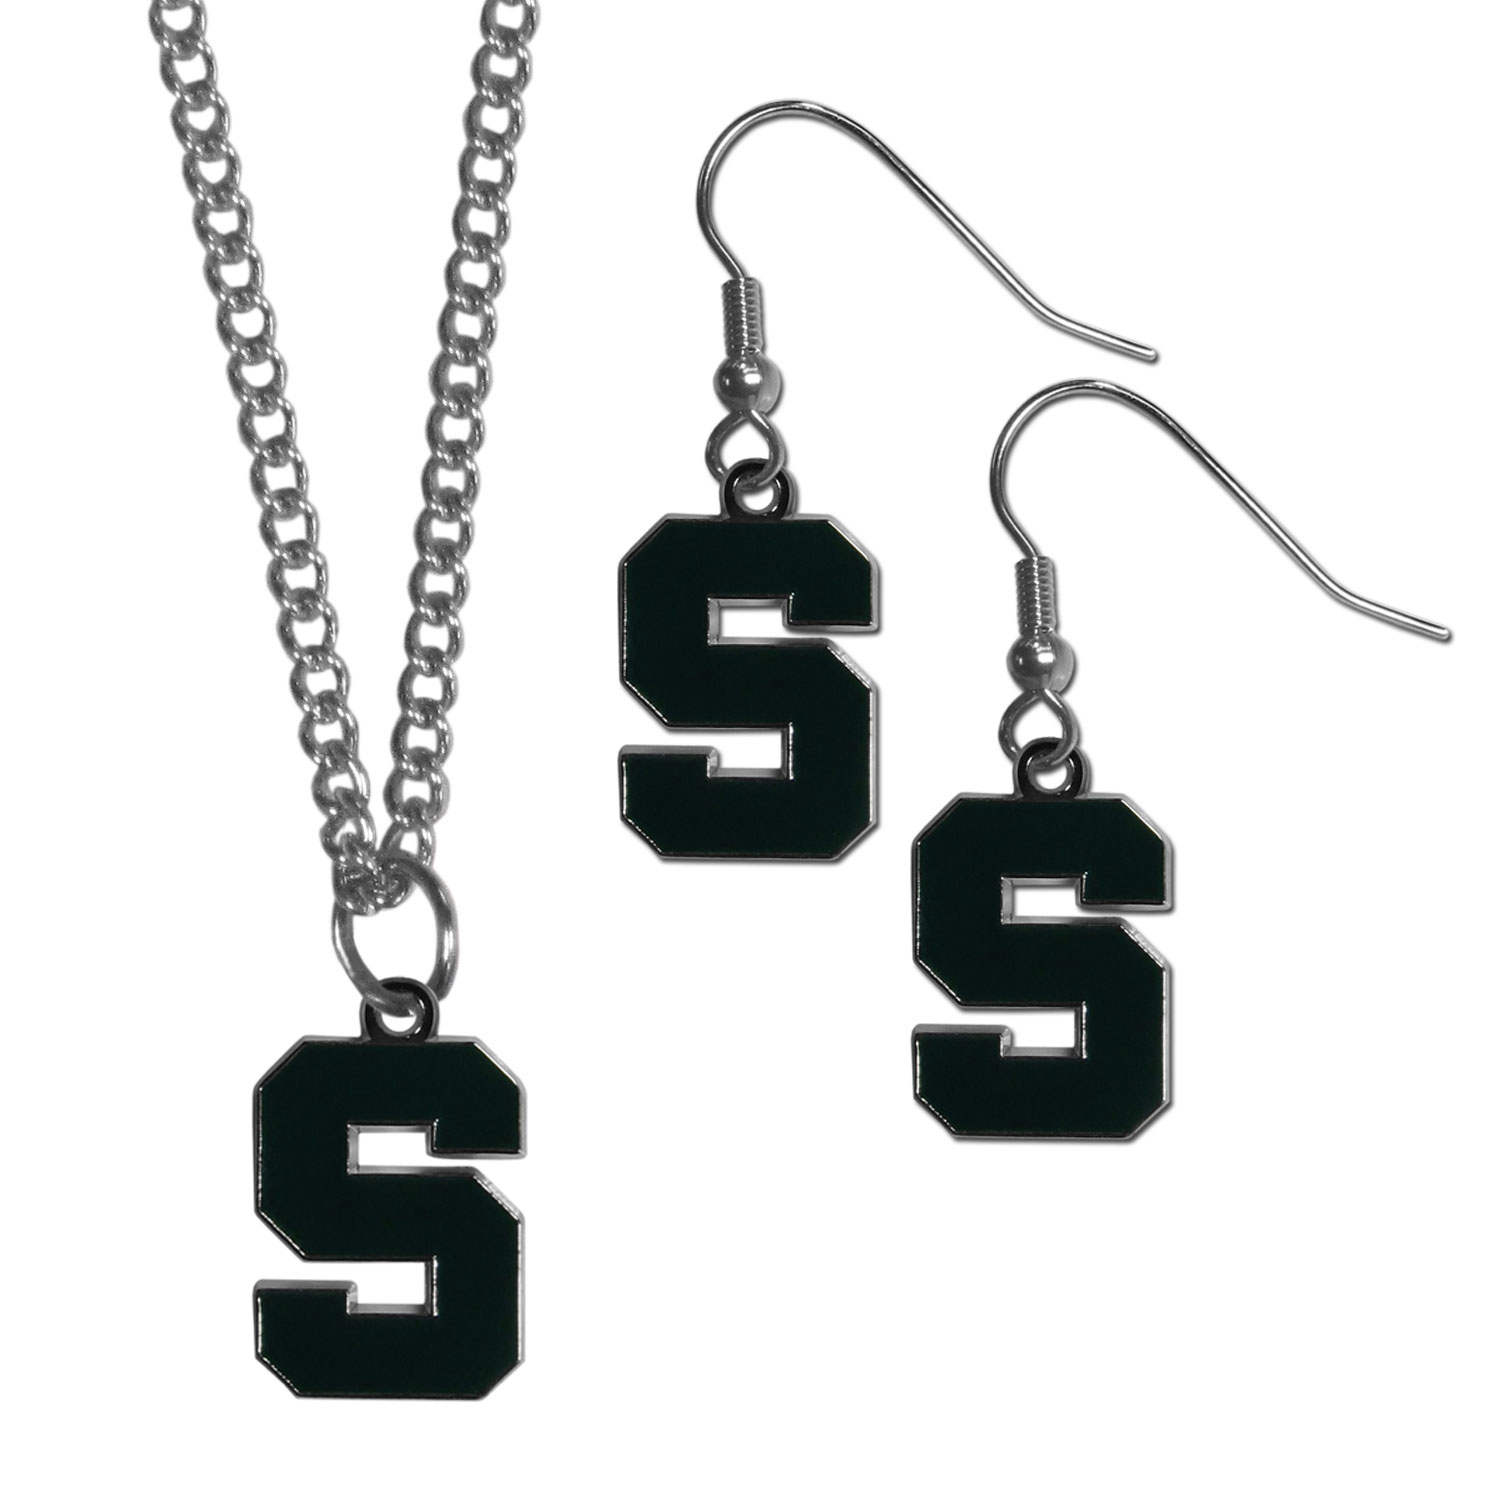 Michigan St. Spartans Dangle Earrings and Chain Necklace Set - This classic jewelry set contains are most popular Michigan St. Spartans dangle earrings and 22 inch chain necklace. The trendy, dangle earrings are lightweight and feature a fully cast metal team charm with enameled team colors. The matching necklace completes this fashion forward combo and is a spirited set that is perfect for game day but nice enough for everyday.